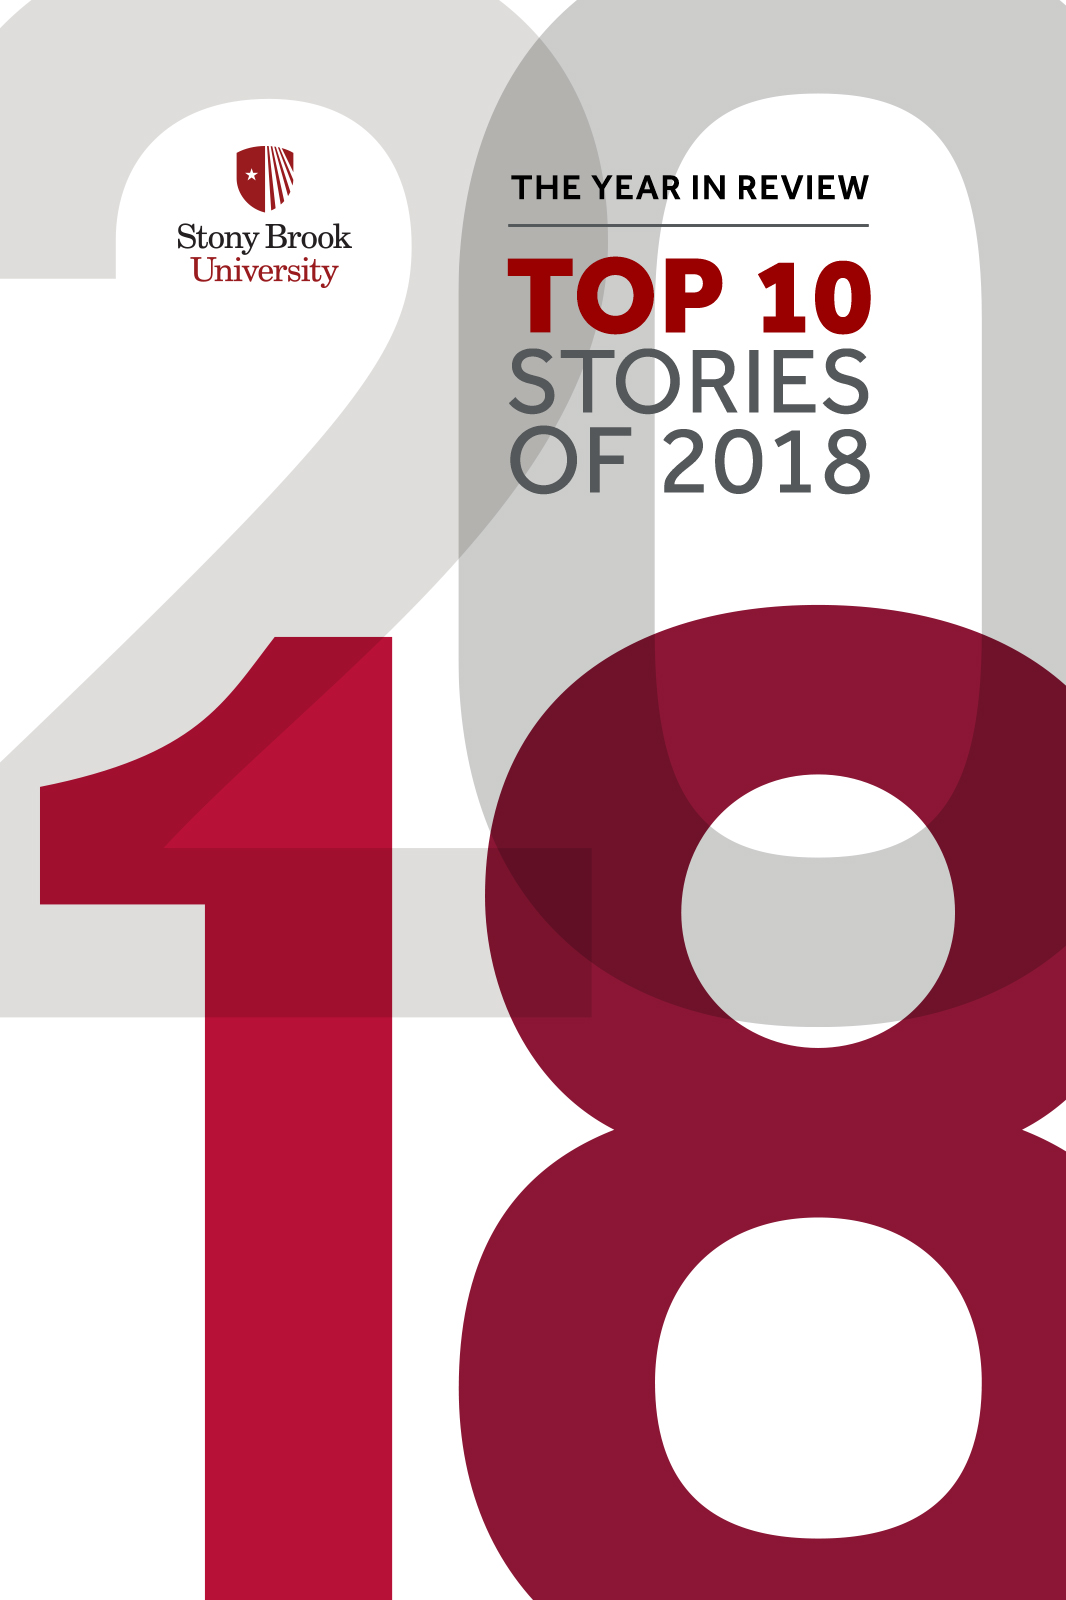 The Year in Review: Top 10 Stories of 2018